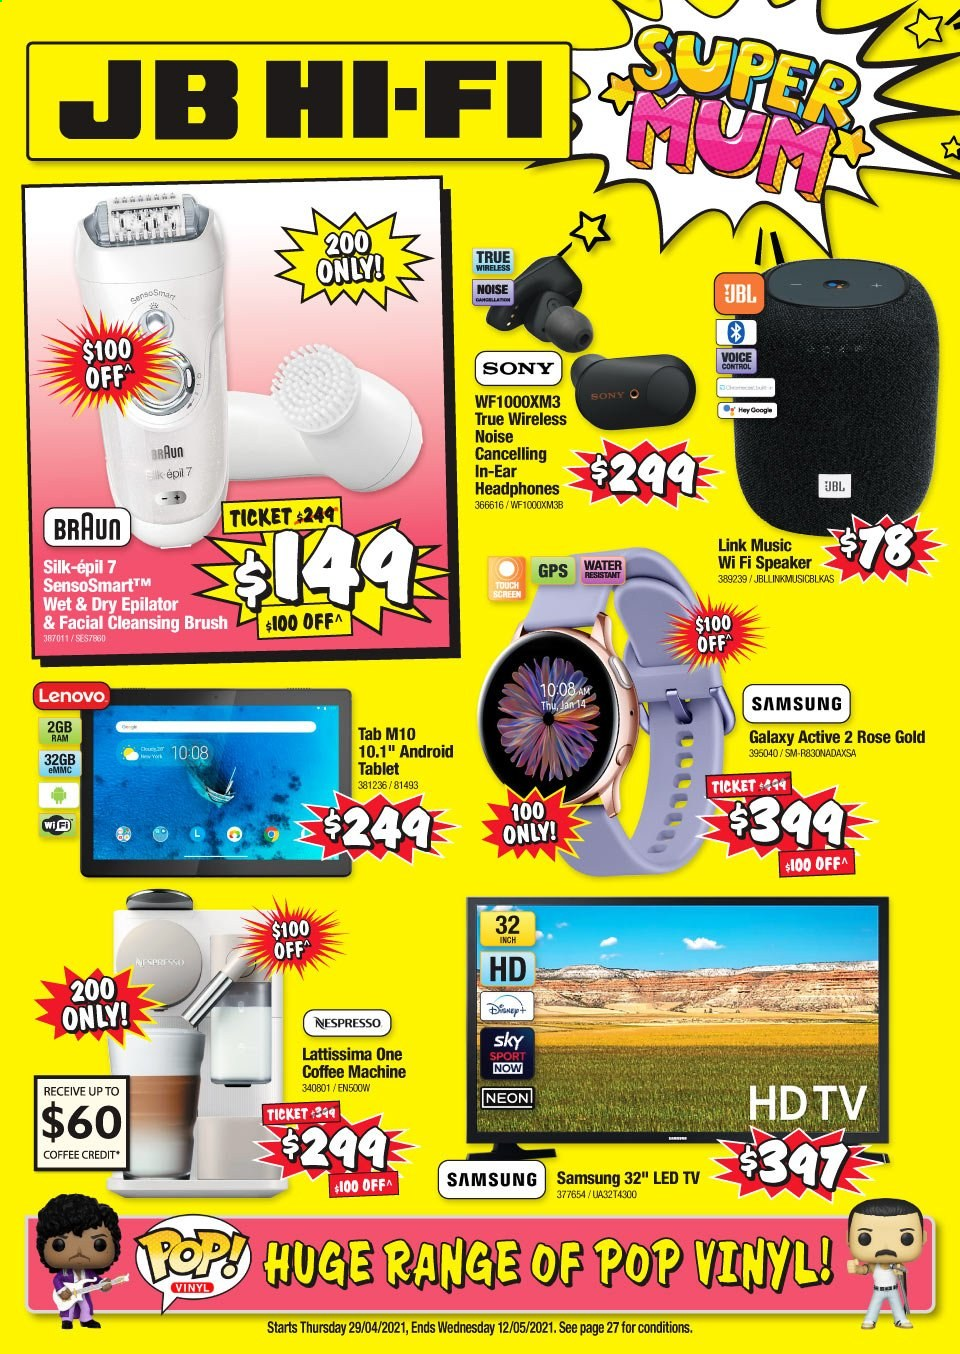 JB Hi-Fi mailer - 29.04.2021 - 12.05.2021 - Sales products - Sony, Lenovo, tablet, Samsung, LED TV, HDTV, TV, hi-fi, speaker, JBL, headphones, Braun, coffee machine, Nespresso, epilator, water. Page 1.